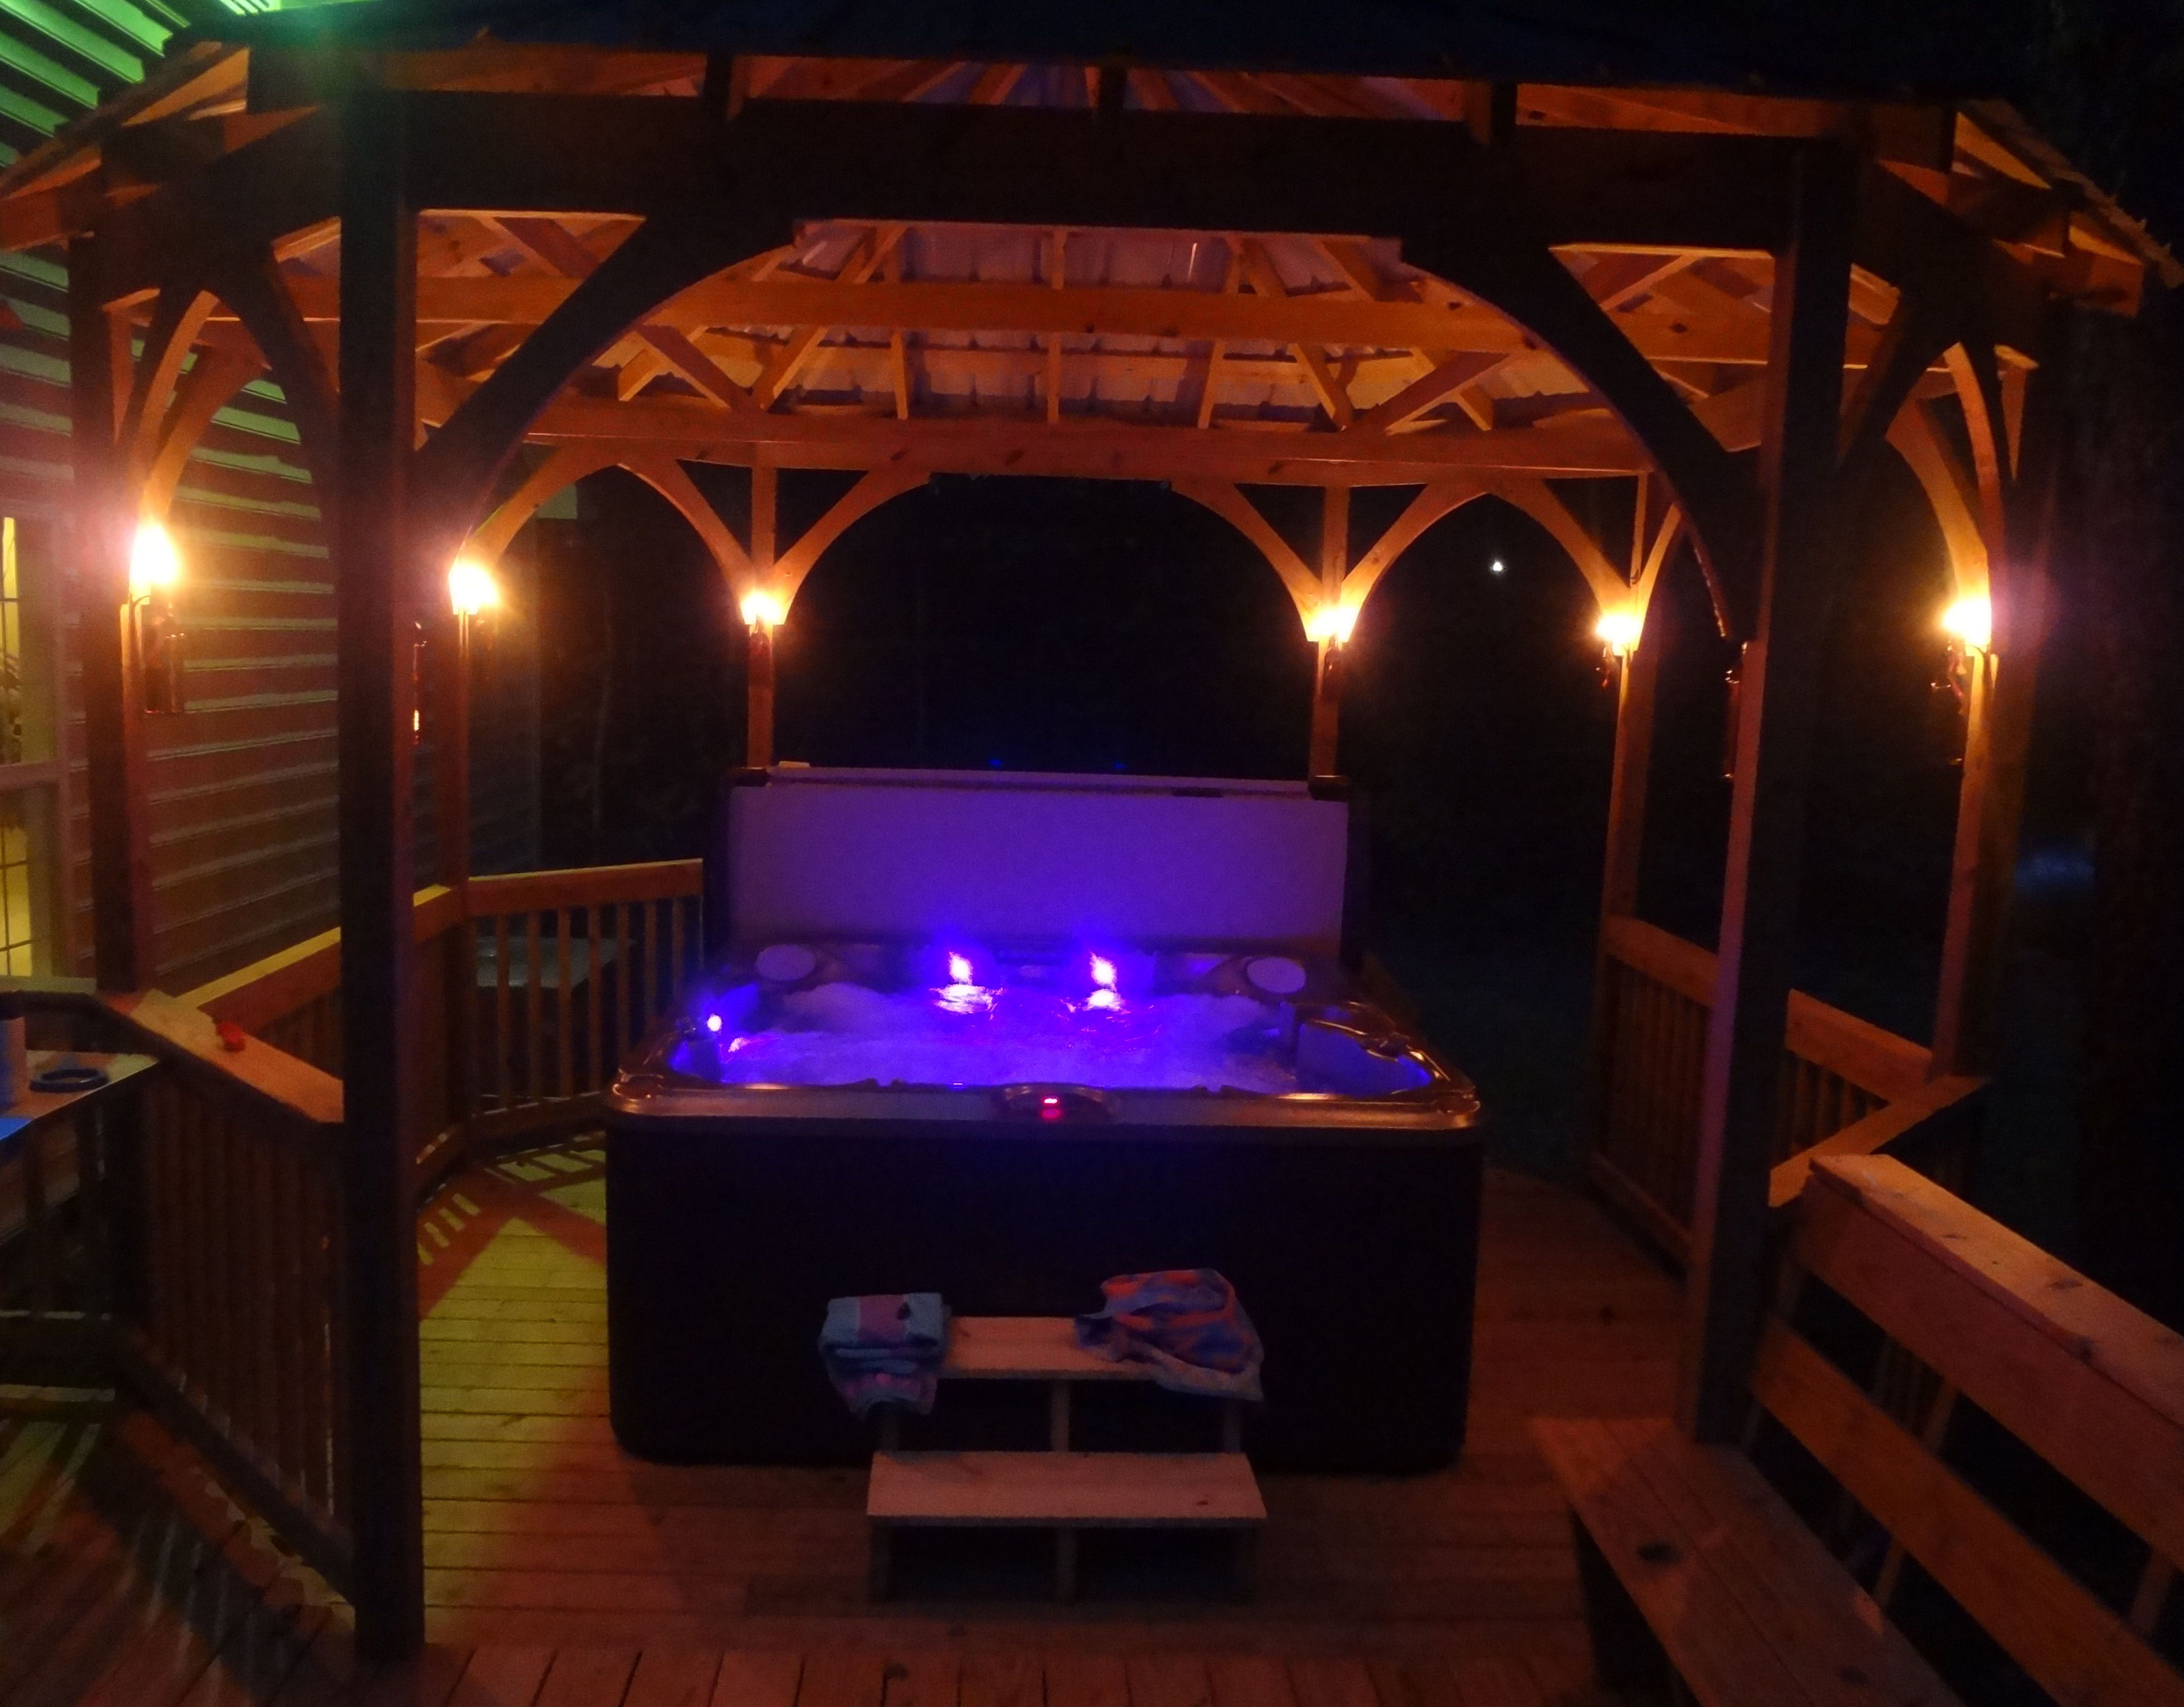 night view of our tub with the wine bottle tiki torches lit